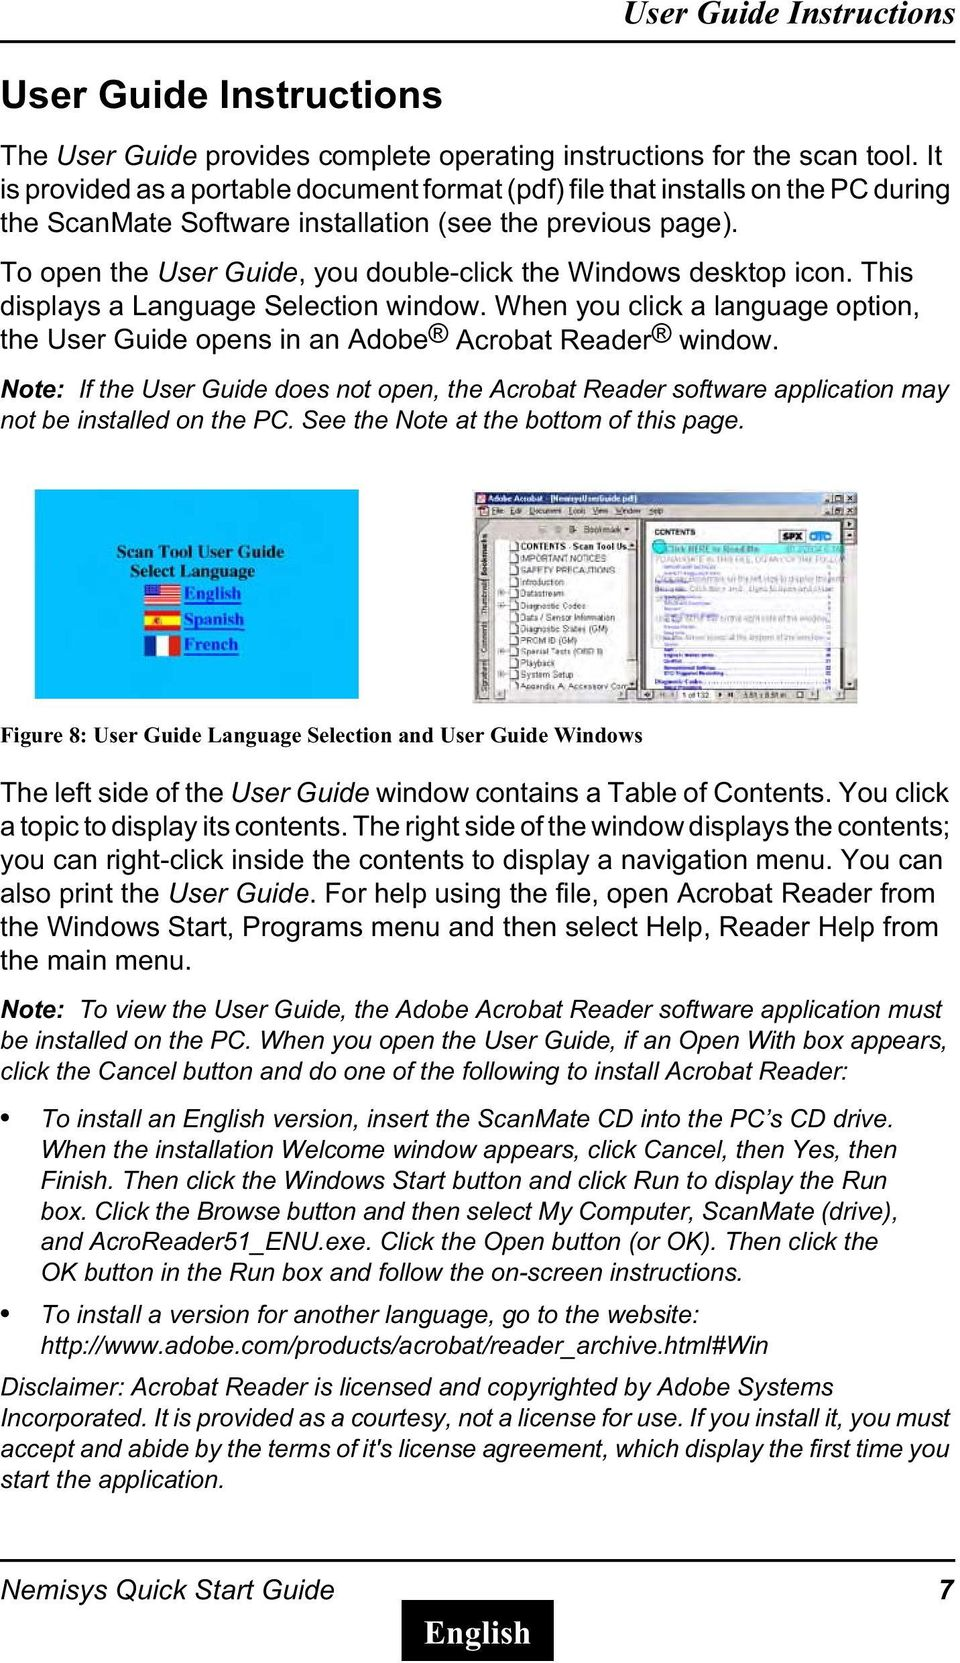 To open the User Guide, you double-click the Windows desktop icon. This displays a Language Selection window. When you click a language option, the User Guide opens in an Adobe Acrobat Reader window.